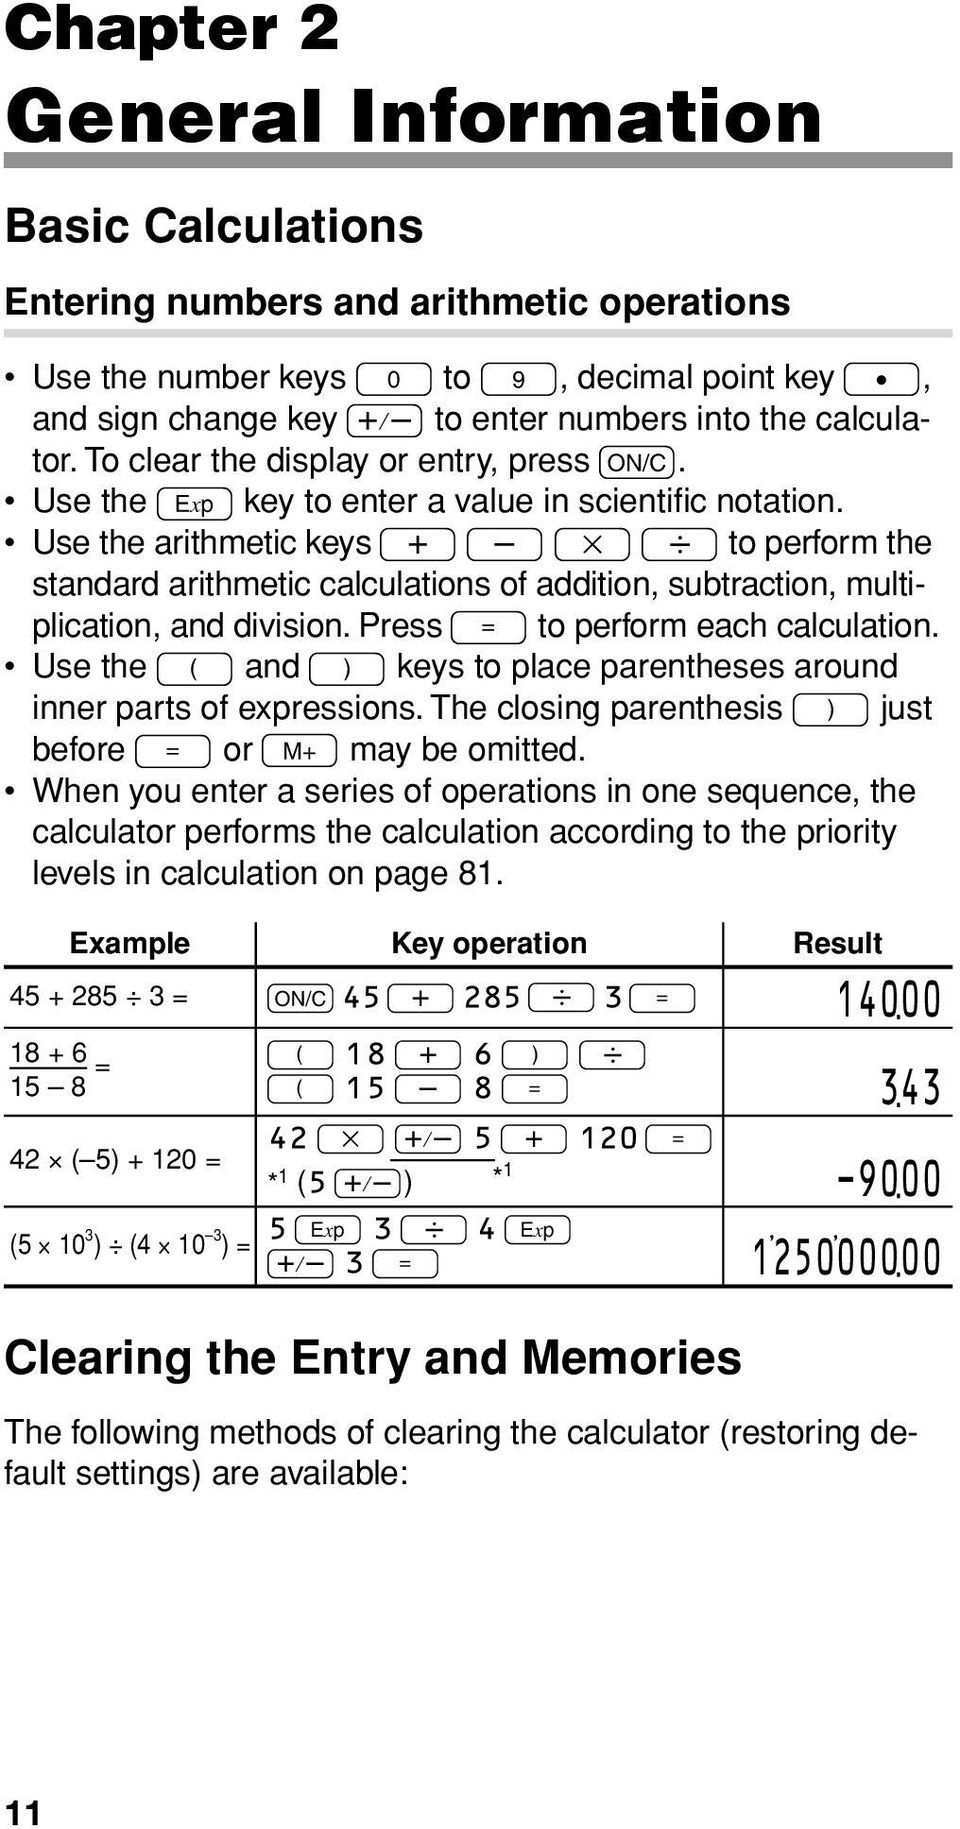 Use the arithmetic keys + - x 8 to perform the standard arithmetic calculations of addition, subtraction, multiplication, and division. Press = to perform each calculation.